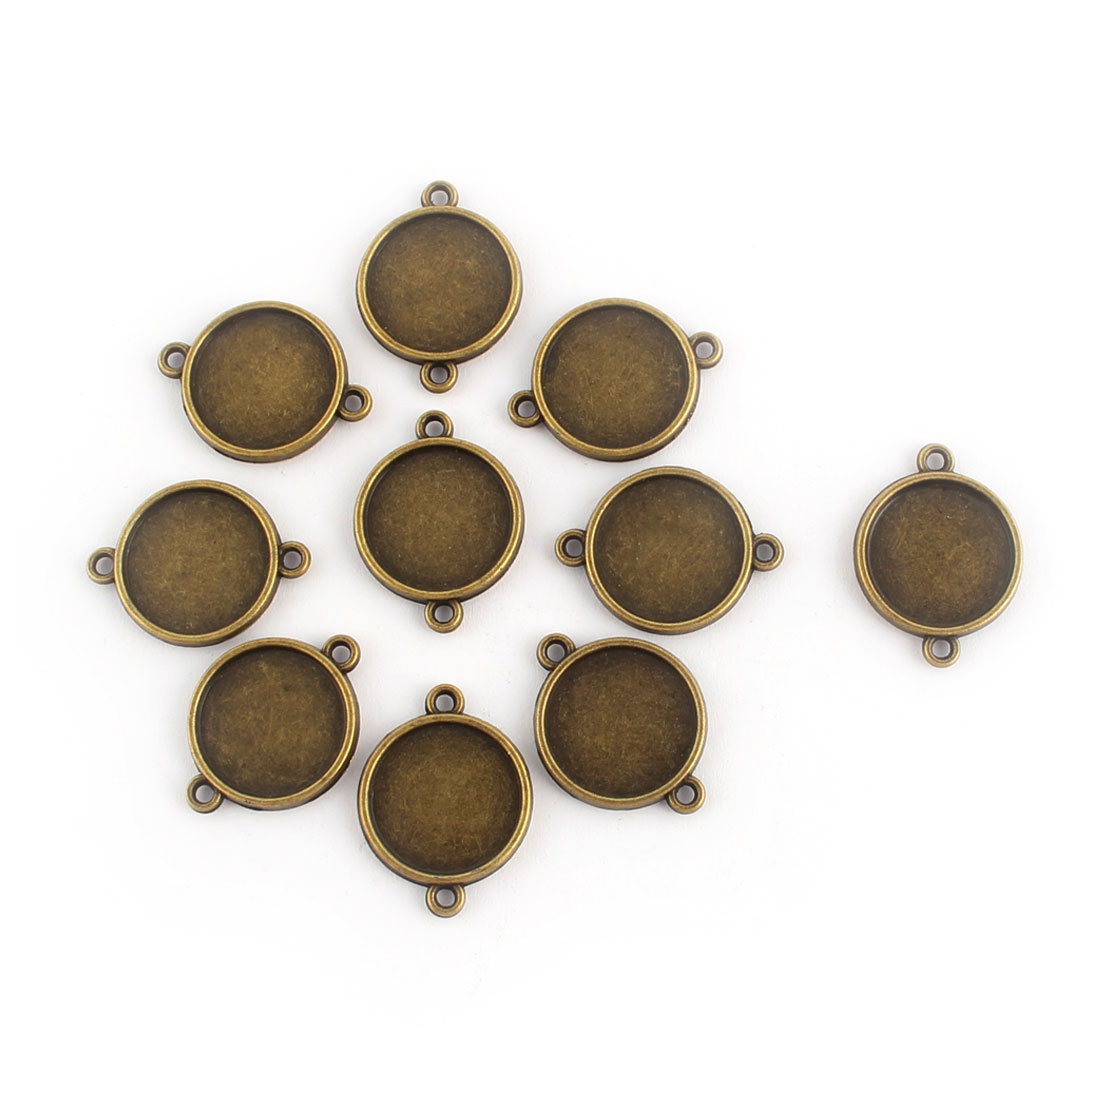 Home Copper Alloy DIY Ornament Retro Style Round Pendant Trays Brass Tone 16mm Inner Dia 10 Pcs